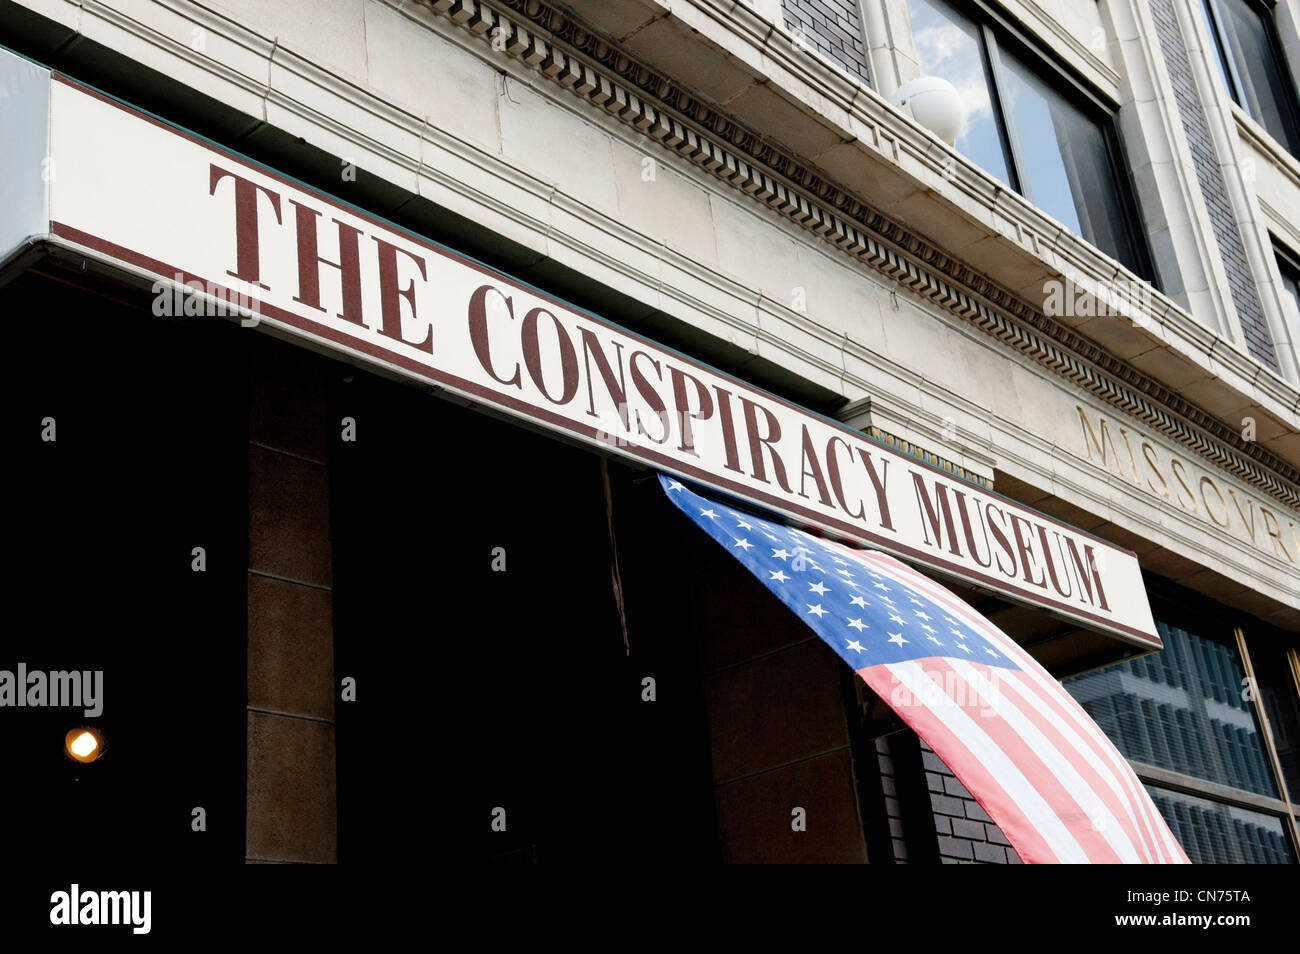 The Conspiracy Museum in Dallas, Texas - Stock Image